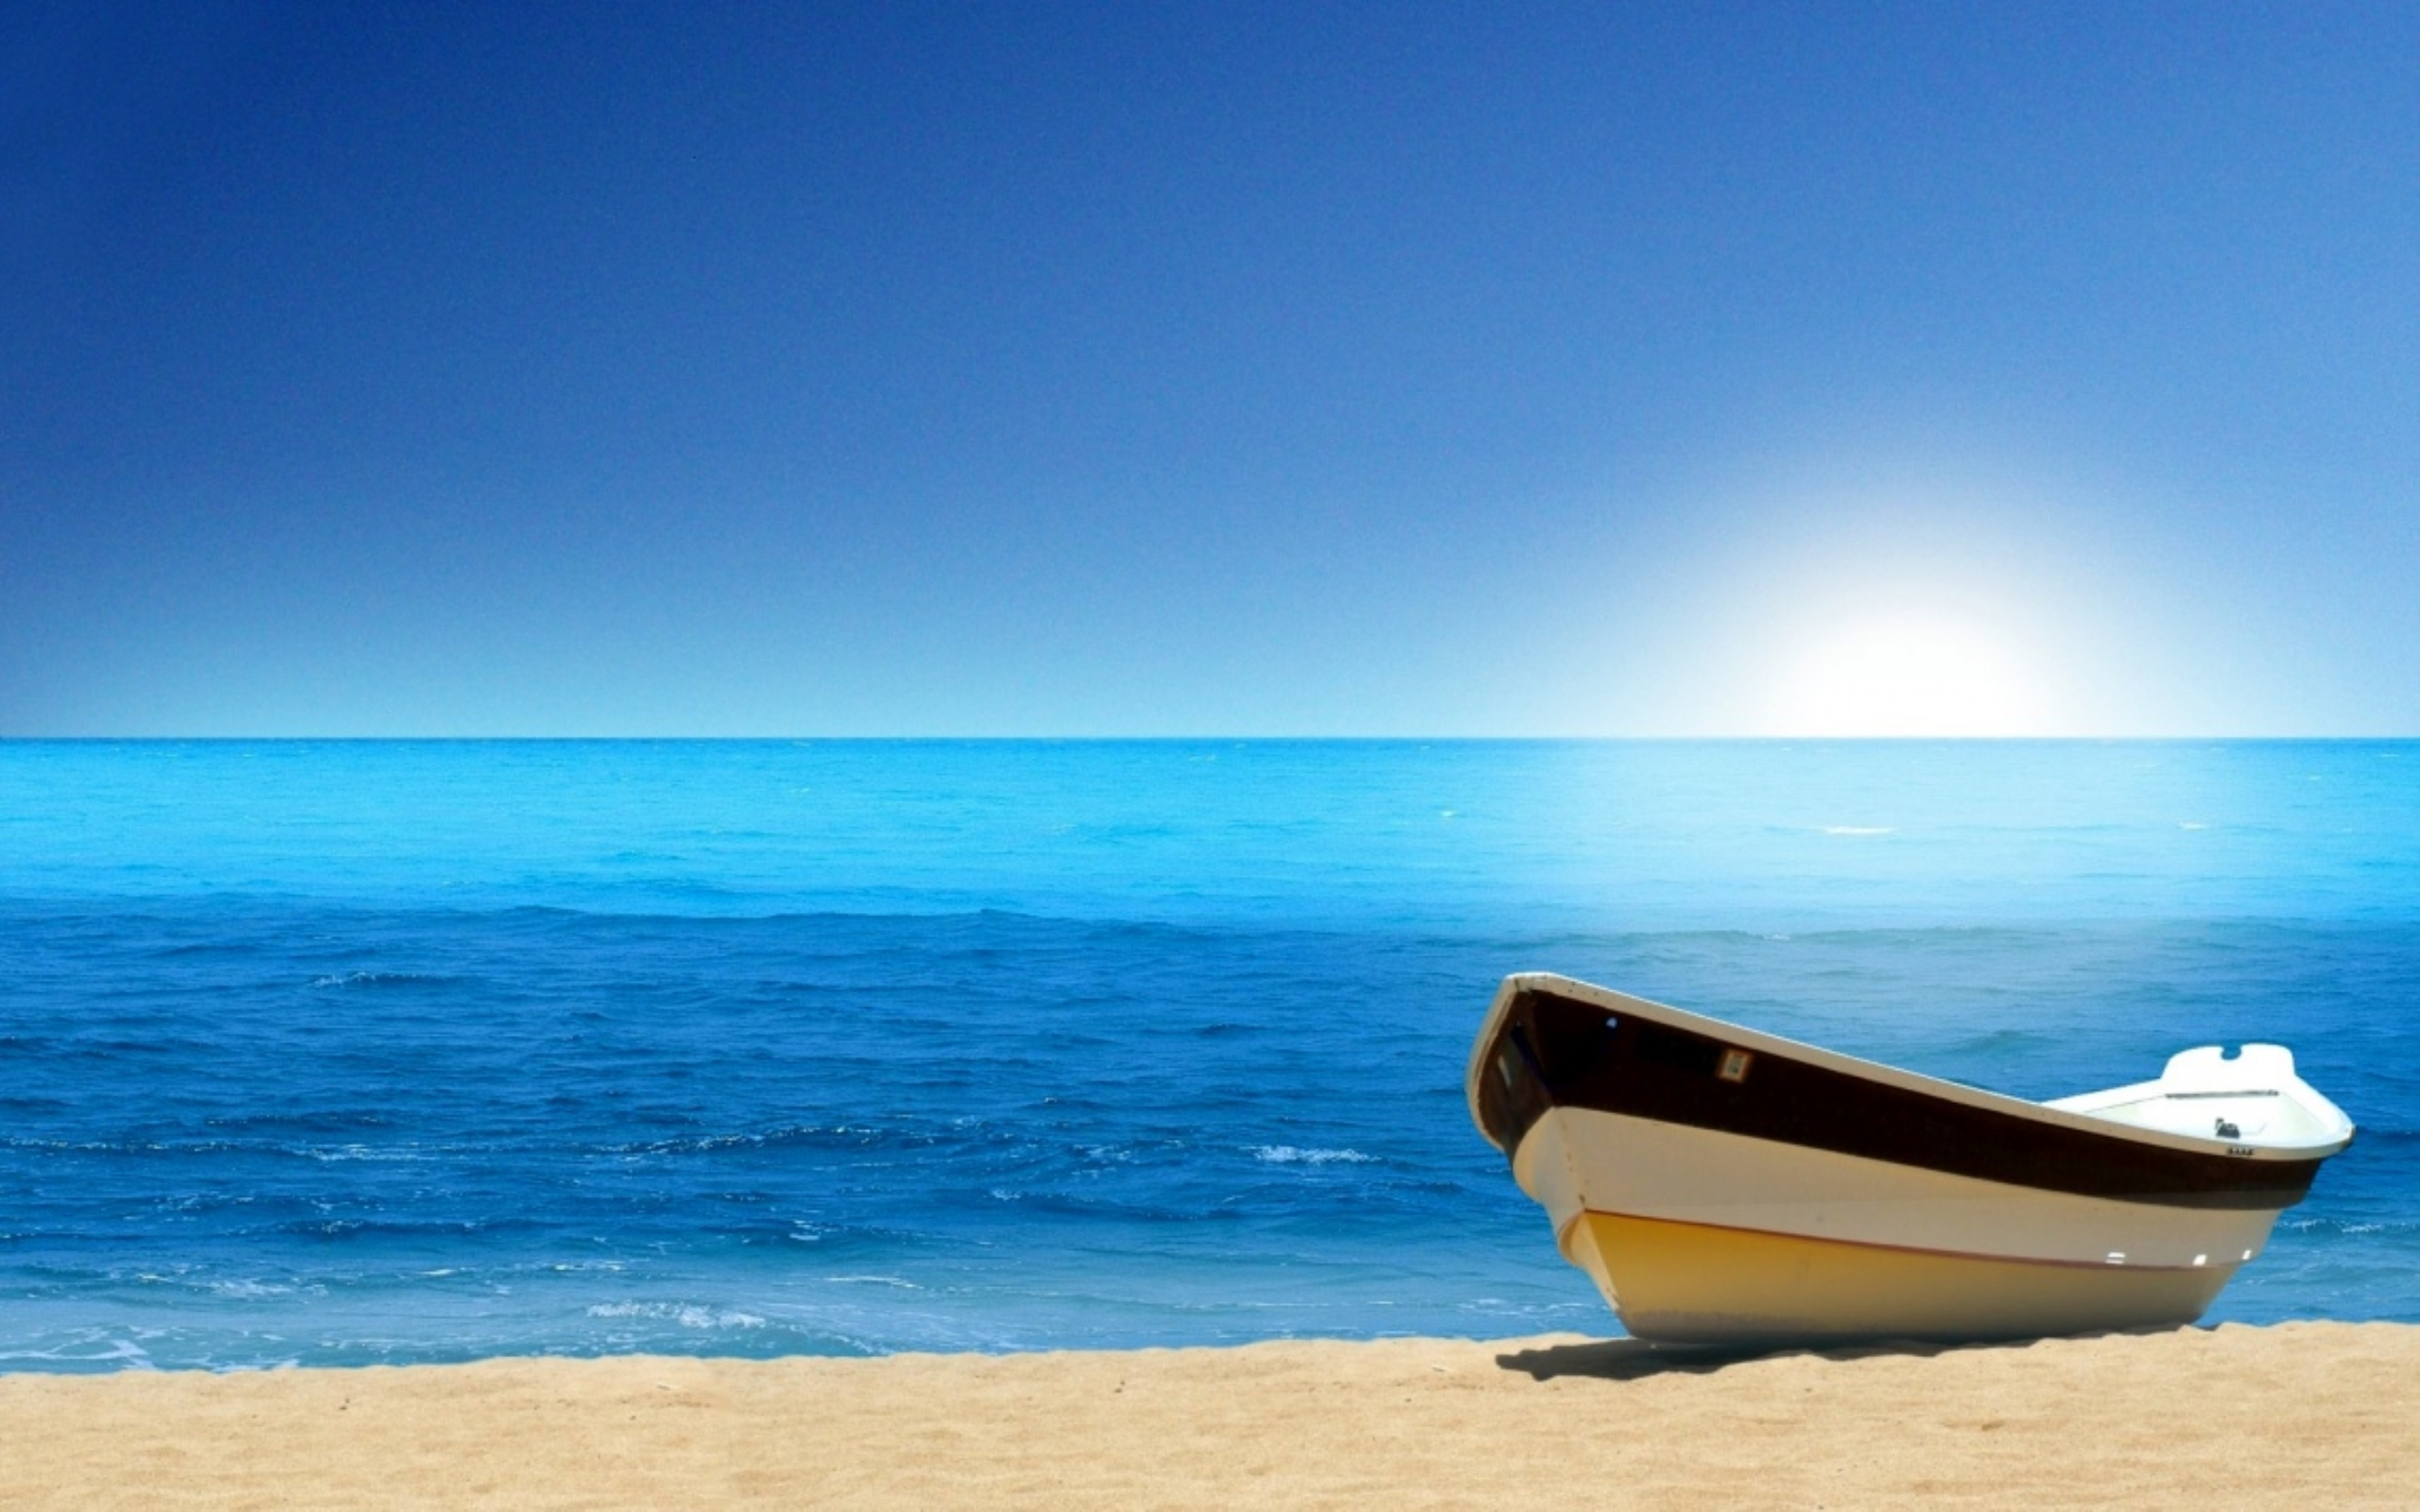 Boat Ocean Wallpapers HD 2560x1600